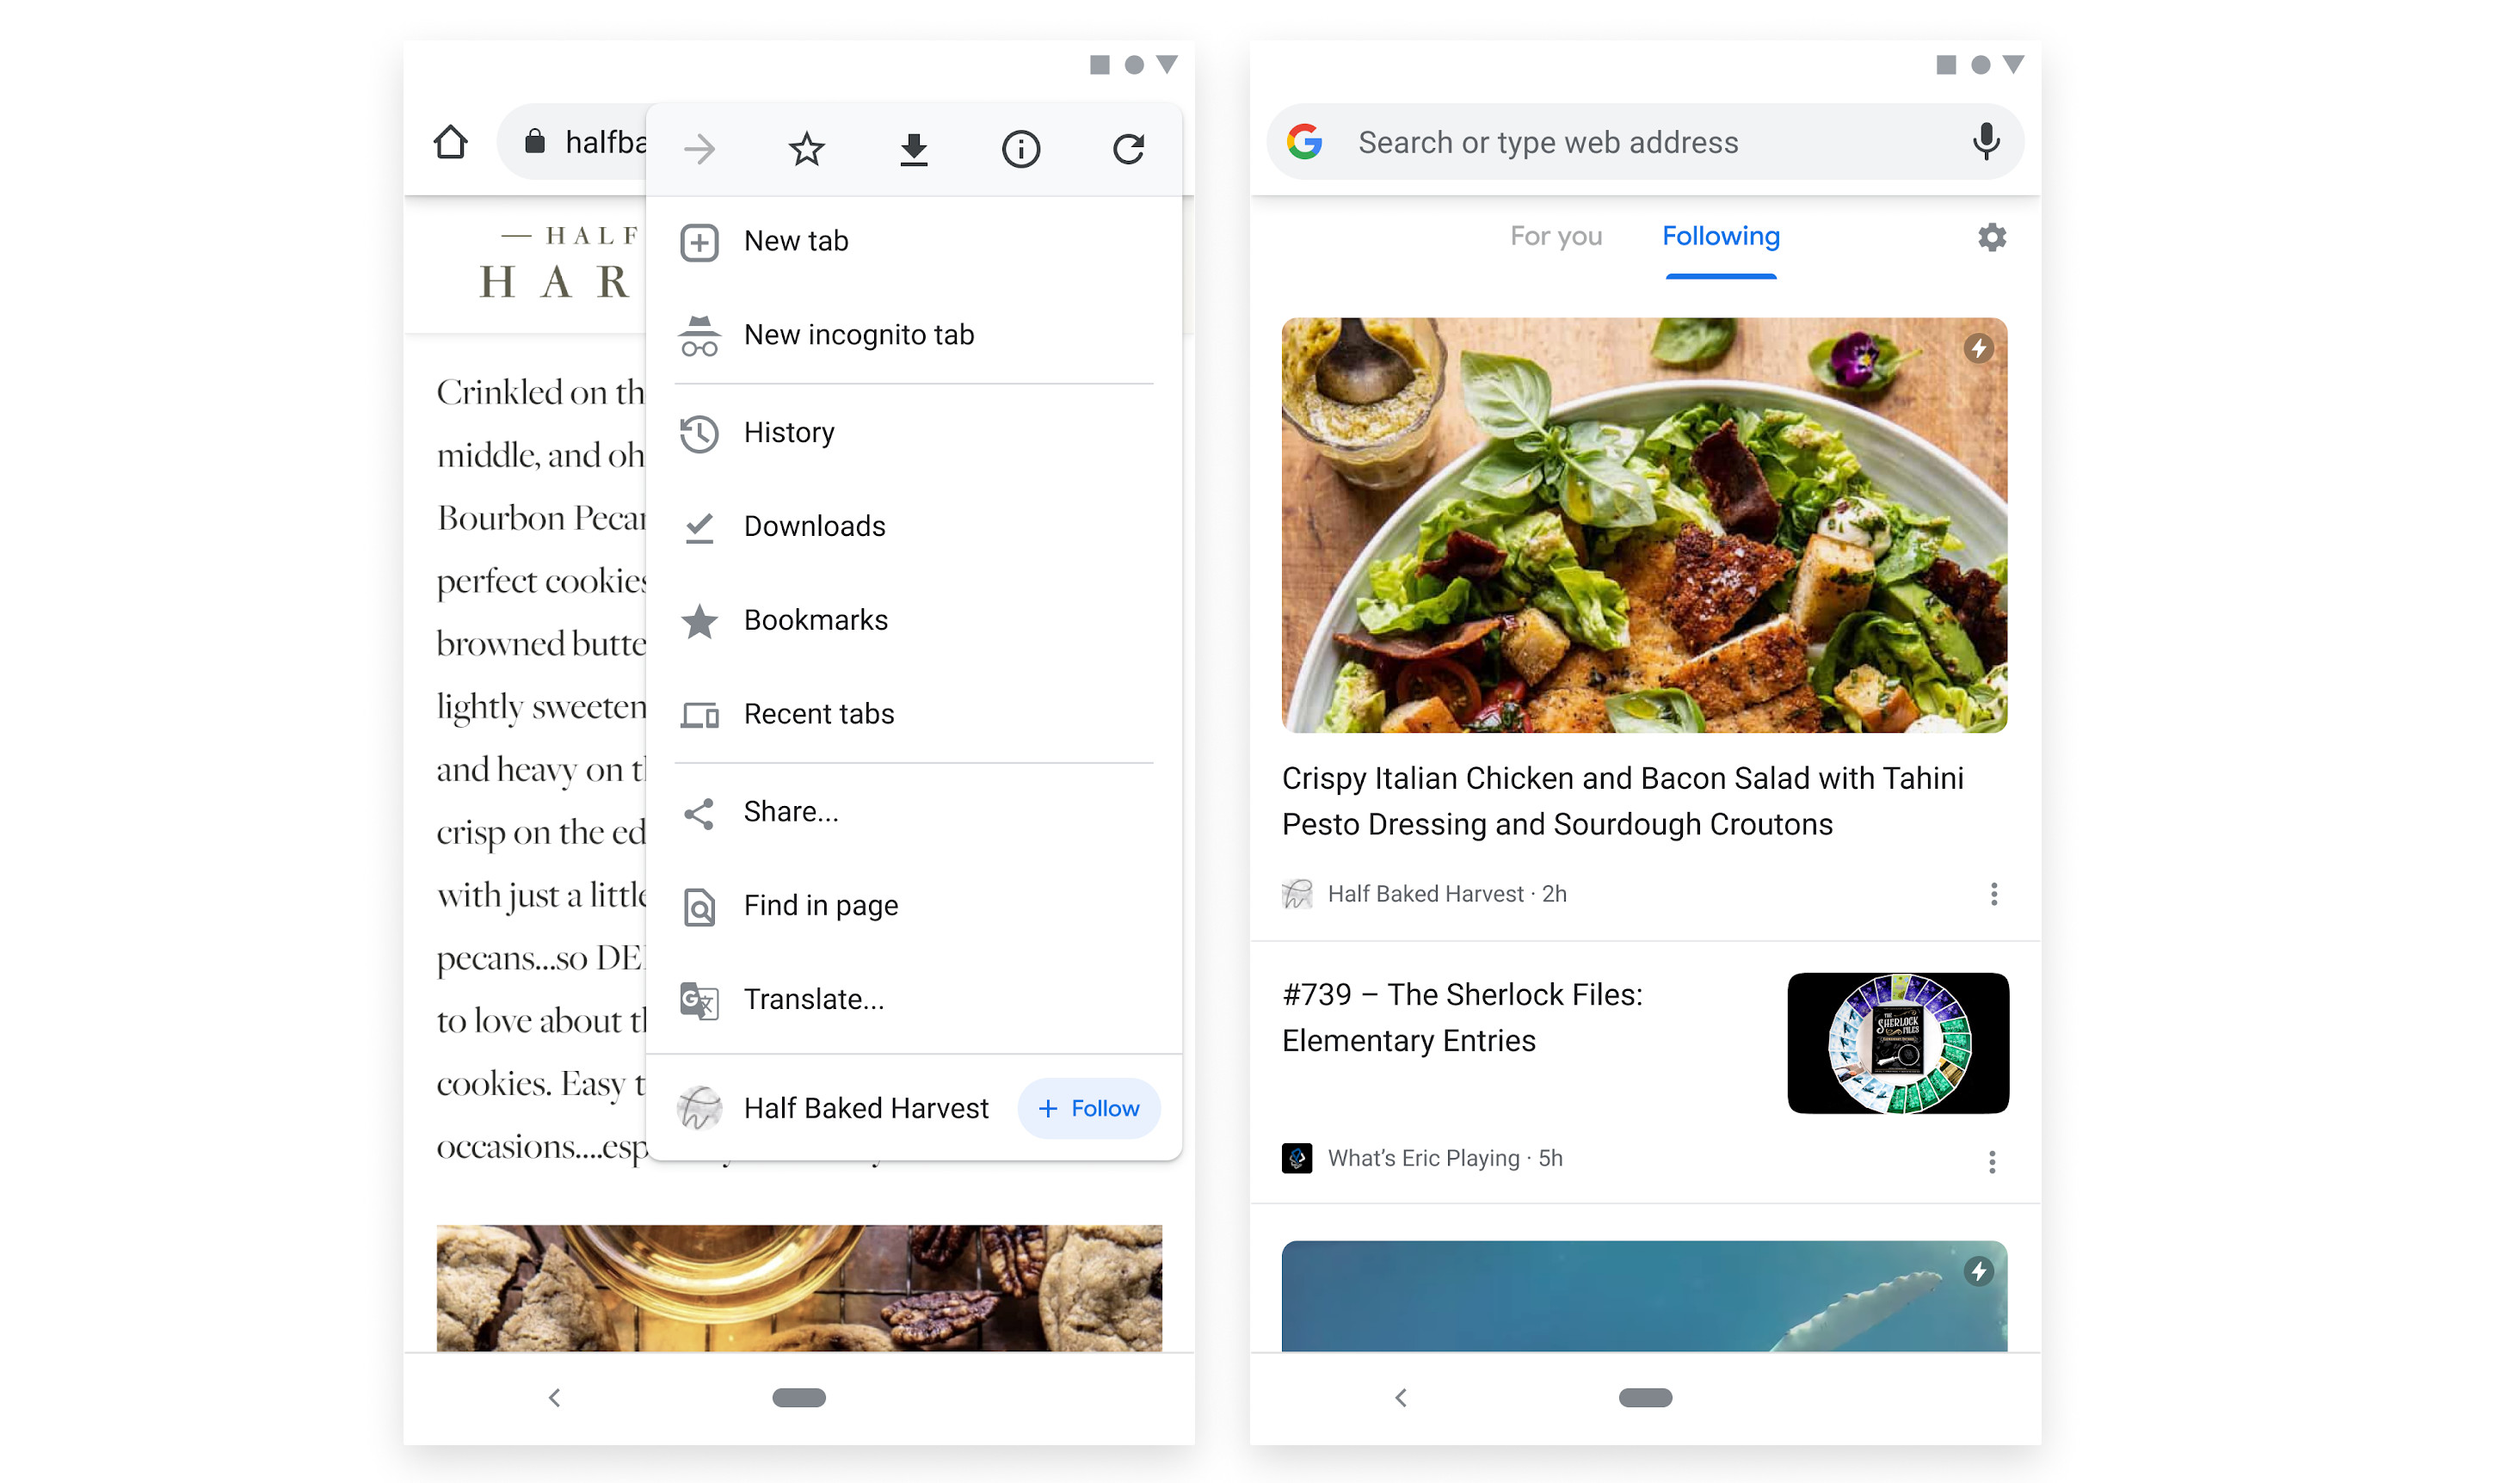 New feature of Chrome Canary on Android allowing you to follow a website with a single tap